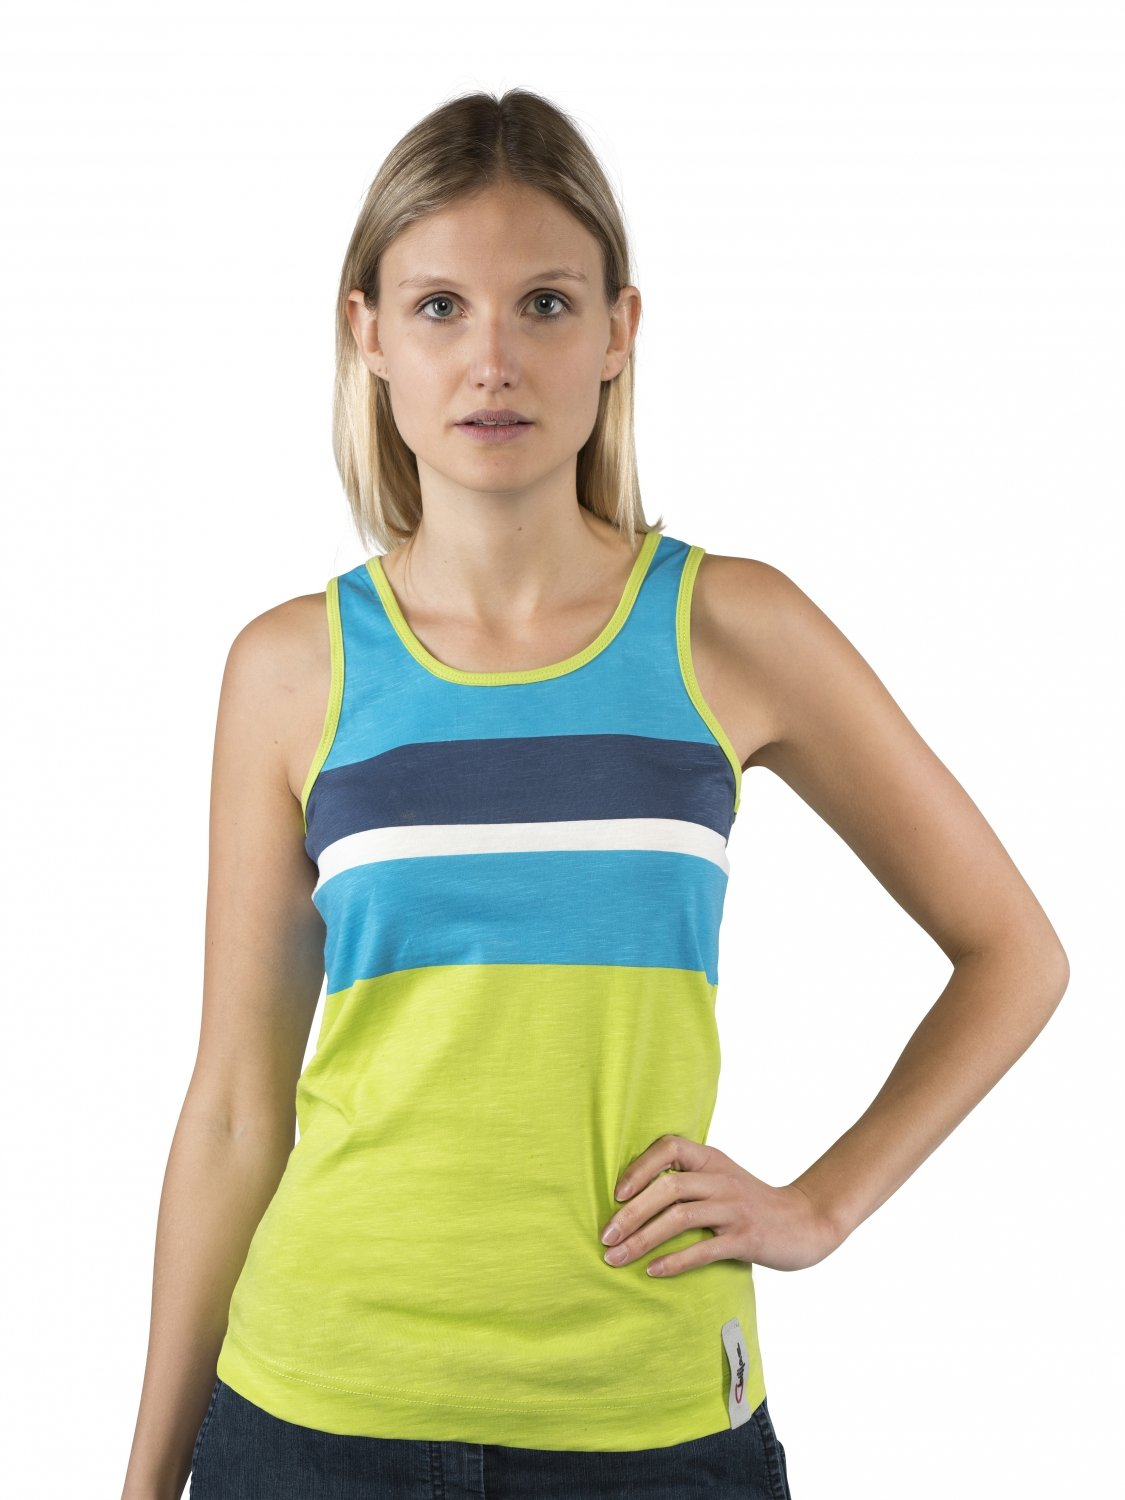 Chillaz Active tanky Stripes, Stripes, tanky Lime Verde Multic f993e5